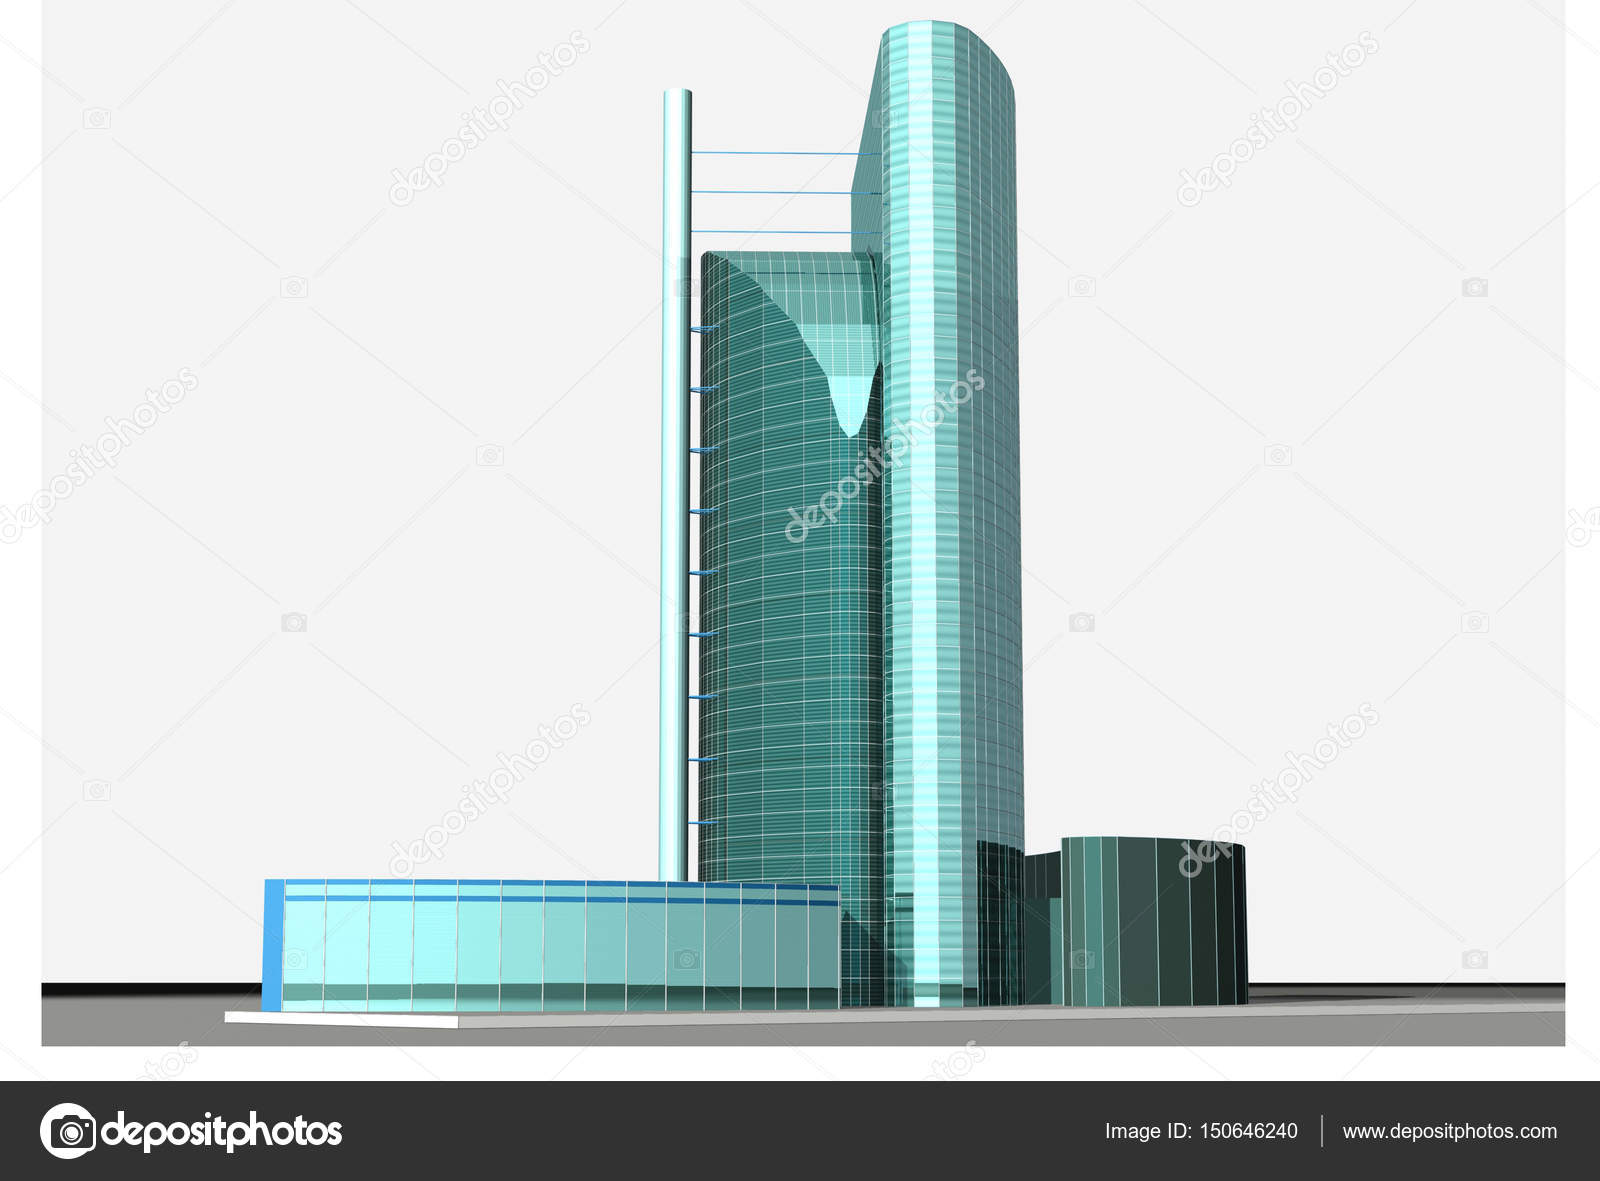 3D model of a skyscraper — Stock Photo © wwaawwaa #150646240